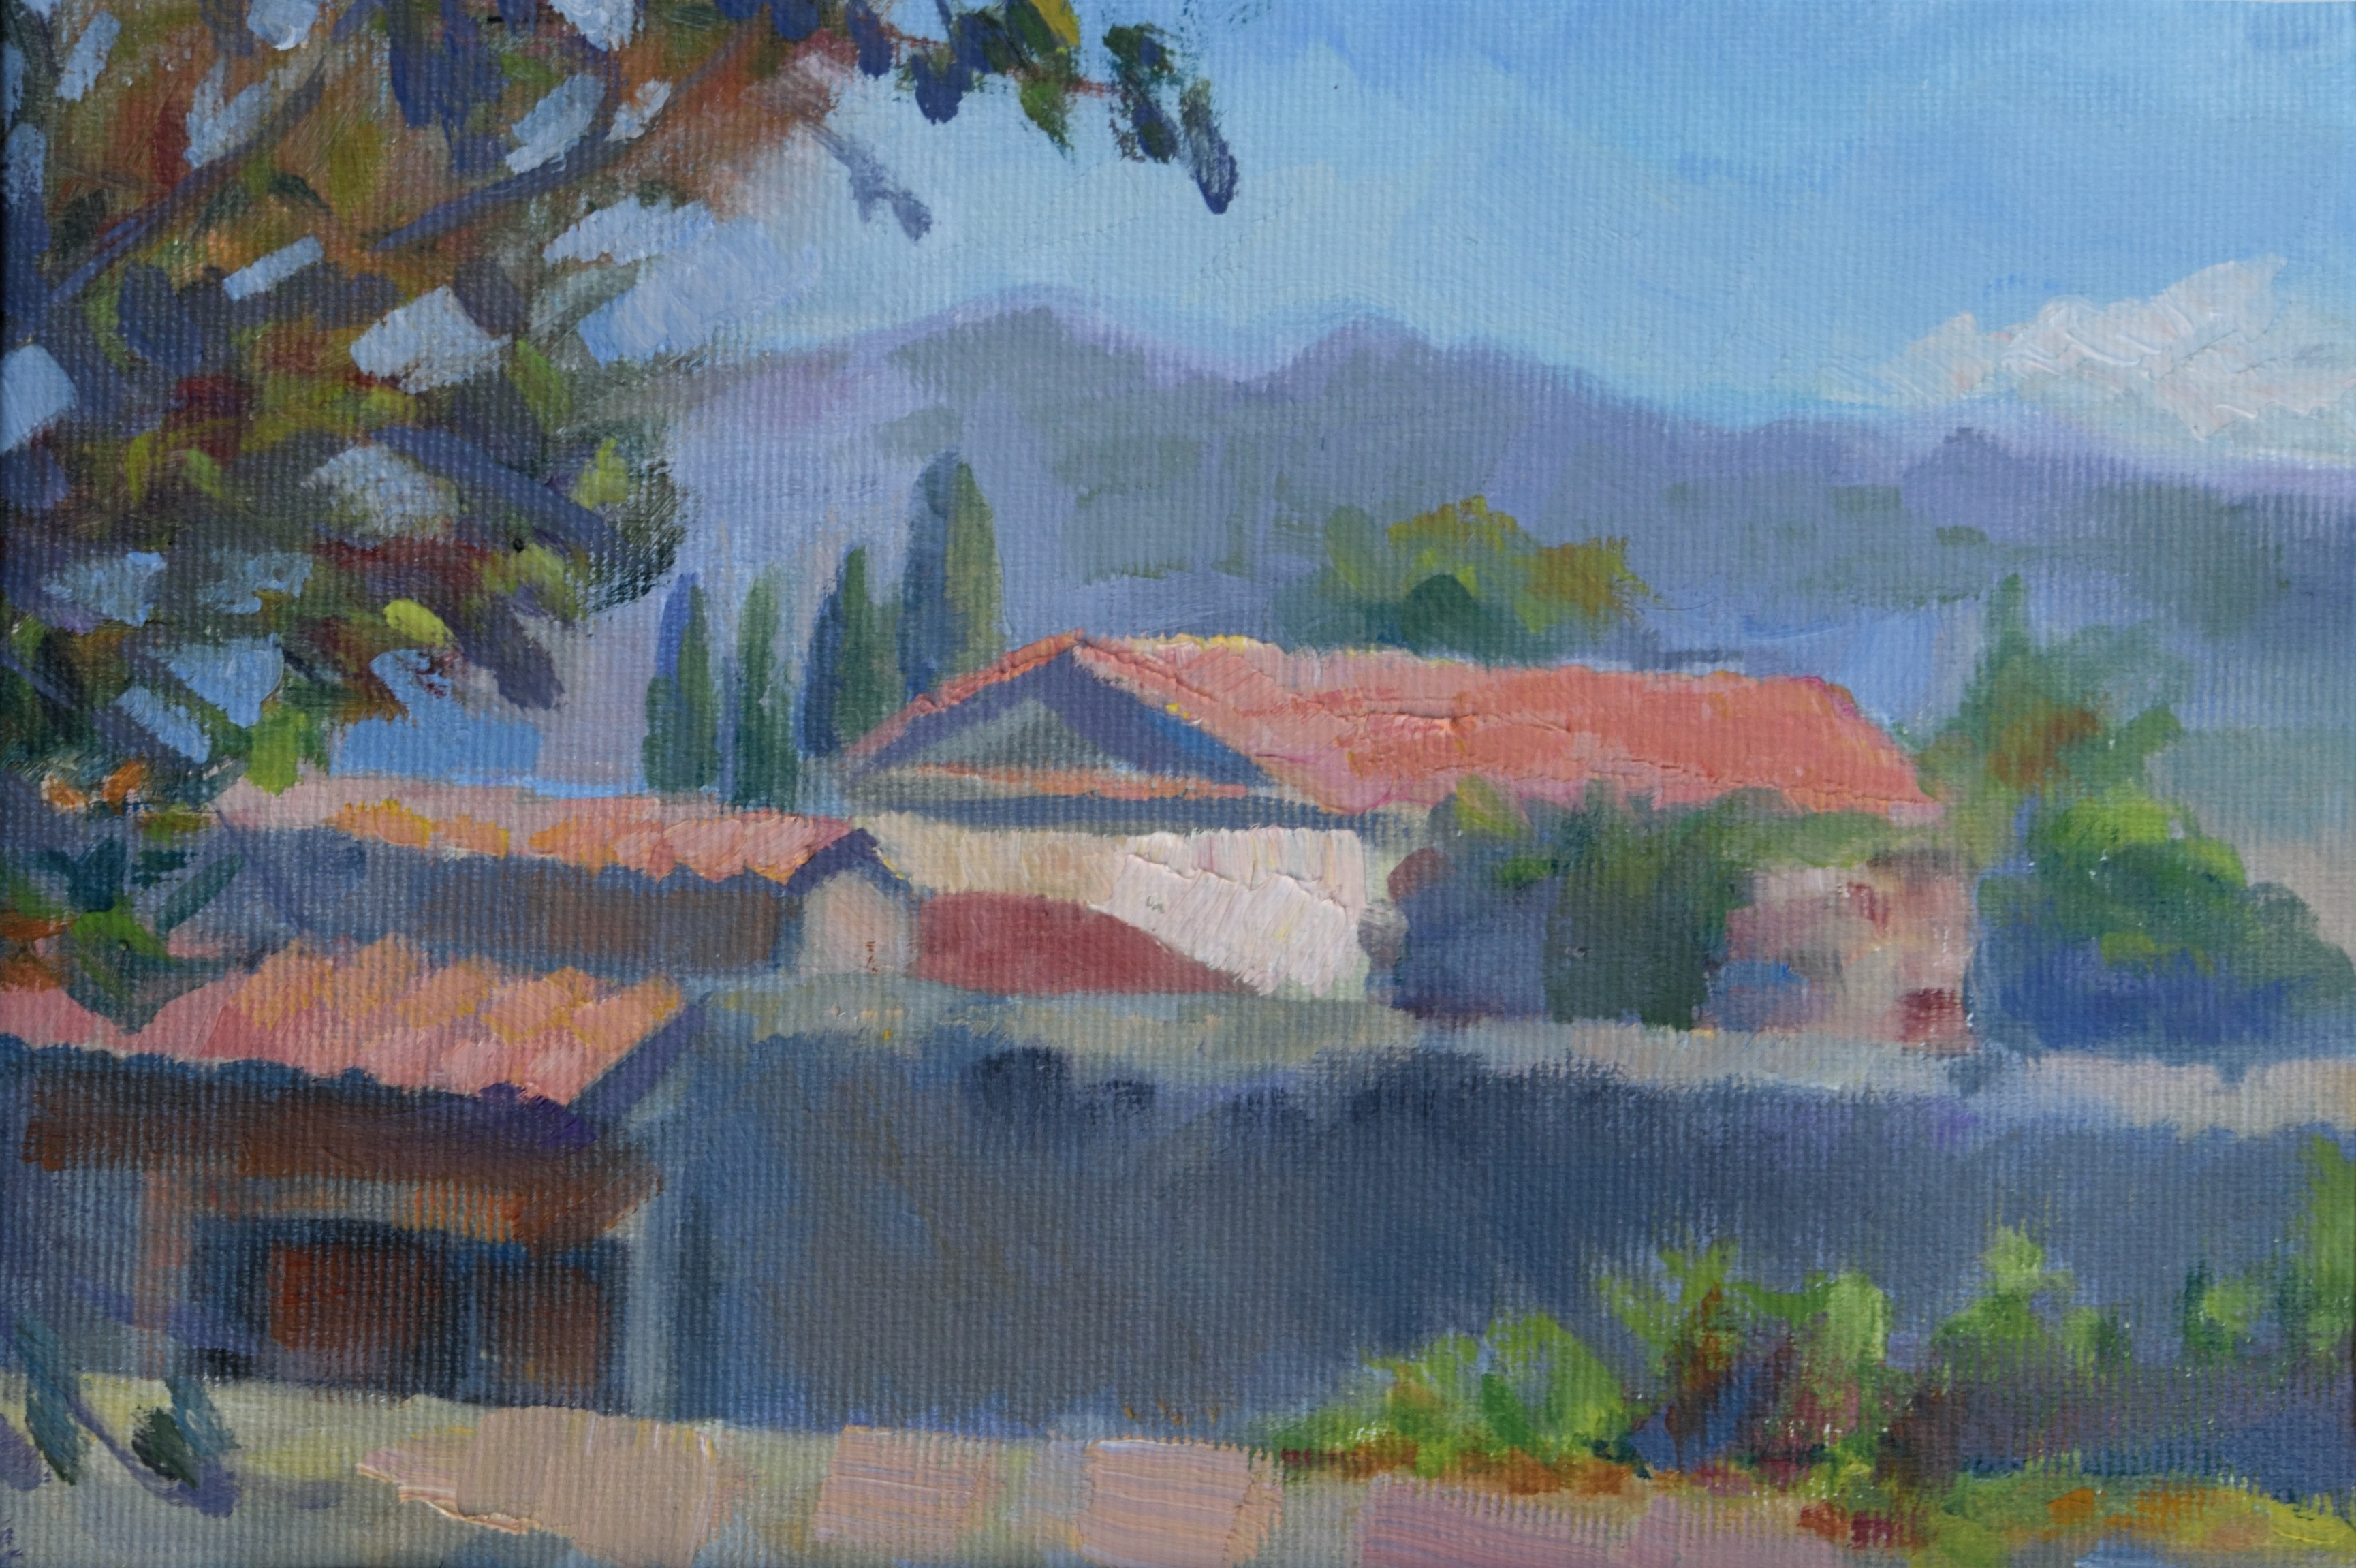 Via delle Porte Sante, oil on canvas, 20 x 30 cm, 2017